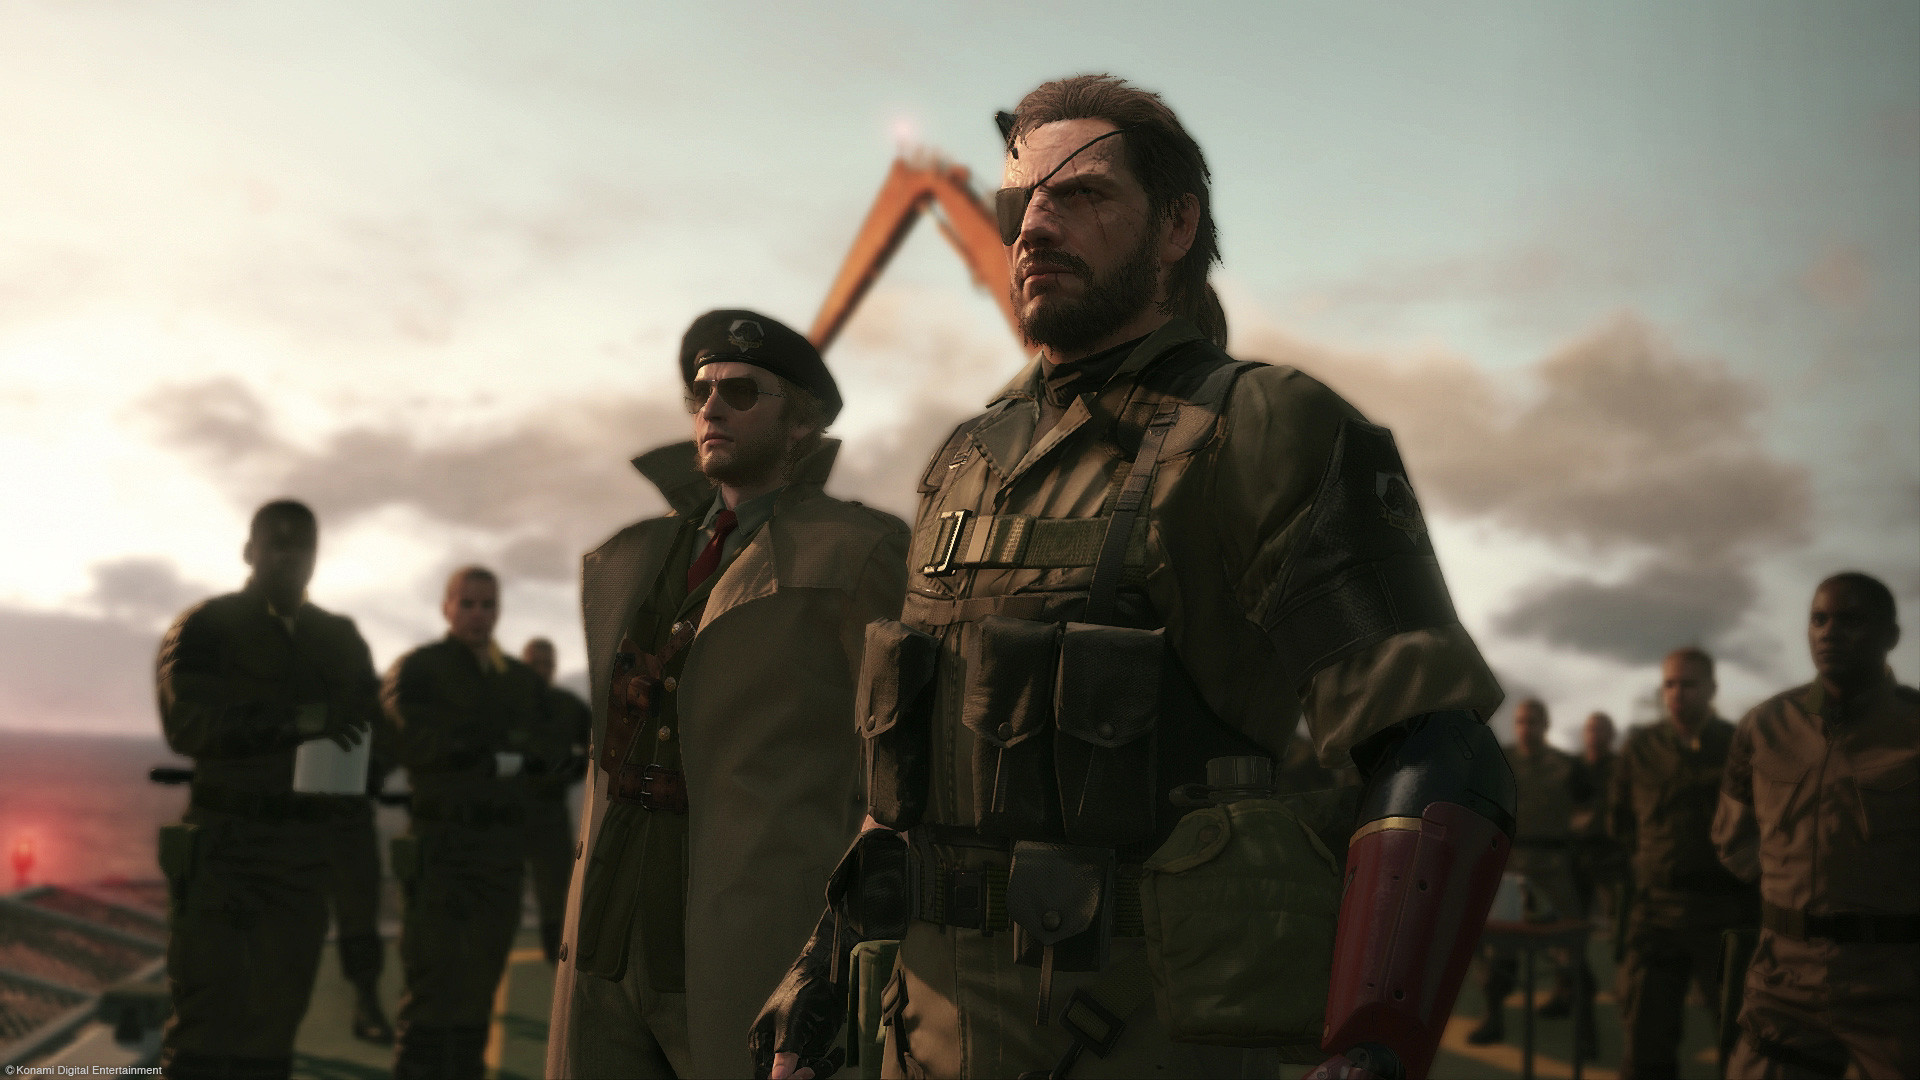 metal-gear-solid-v-phantom-pain 13008